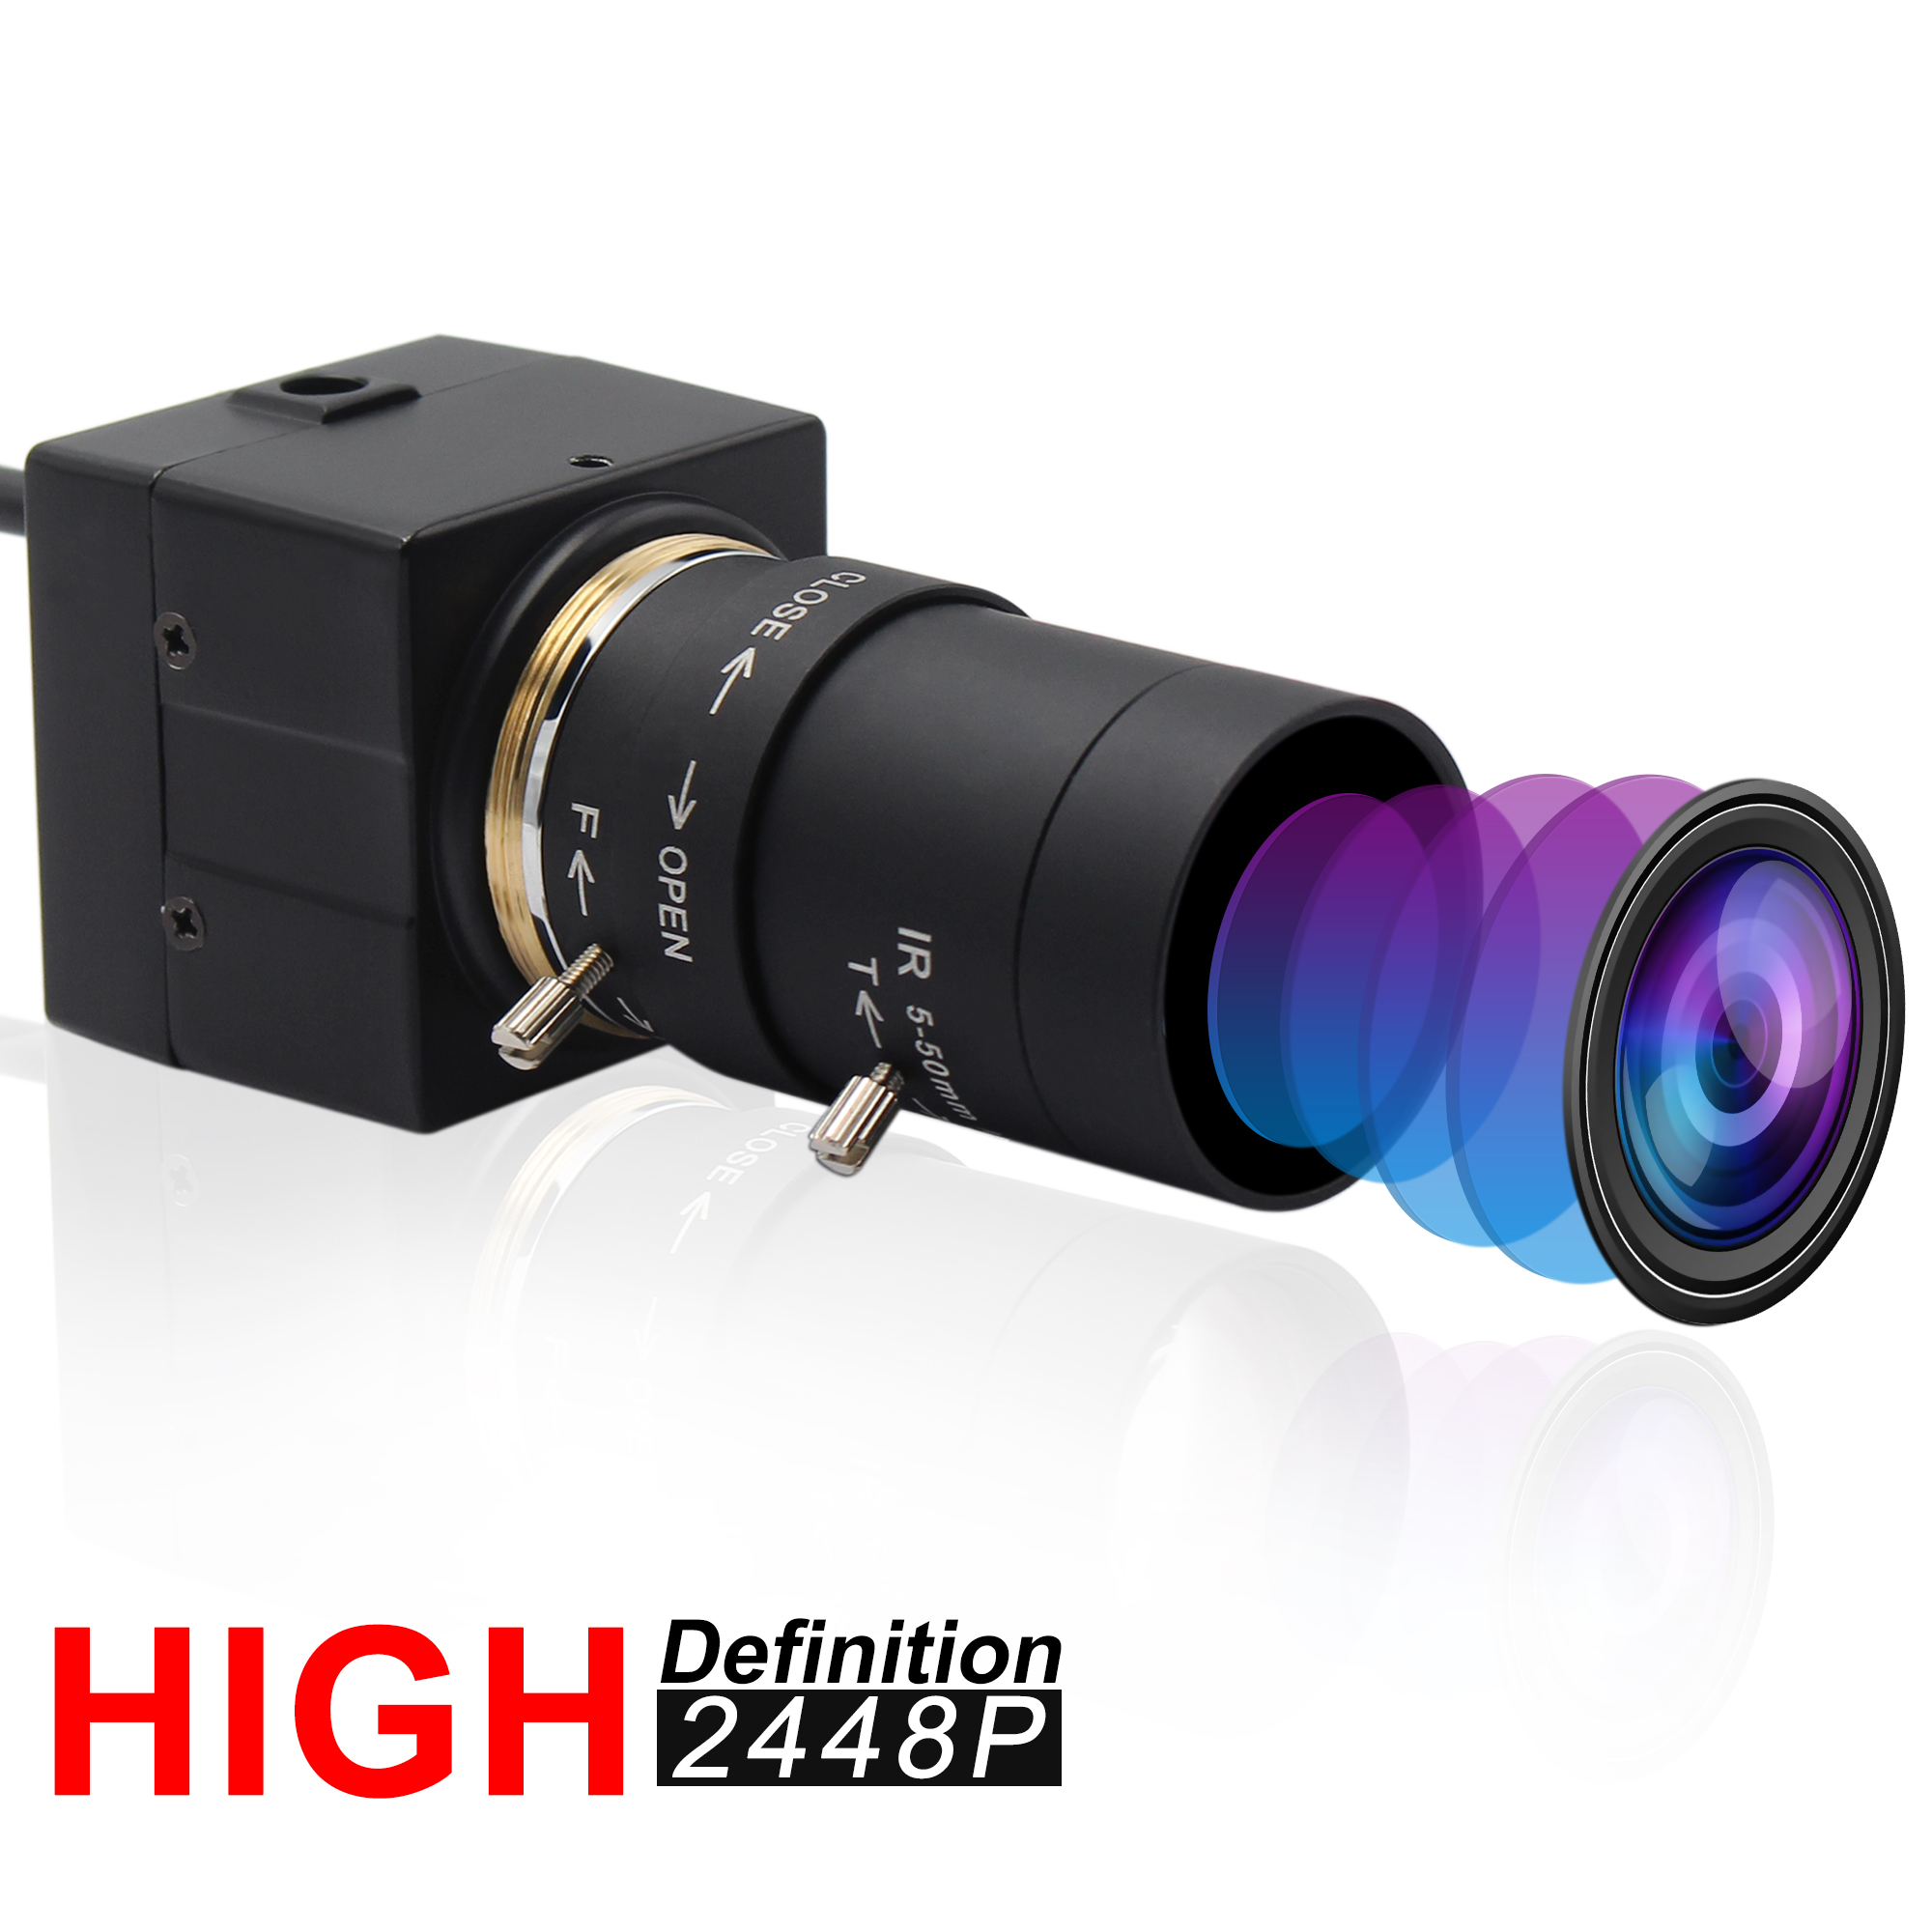 8MP Surveillance CCTV <font><b>SONY</b></font> <font><b>IMX179</b></font> Manual Iris Varifocal 2.8-12mm Lens Indurstrial USB Camera for Android ,Linux Windows Mac OS image